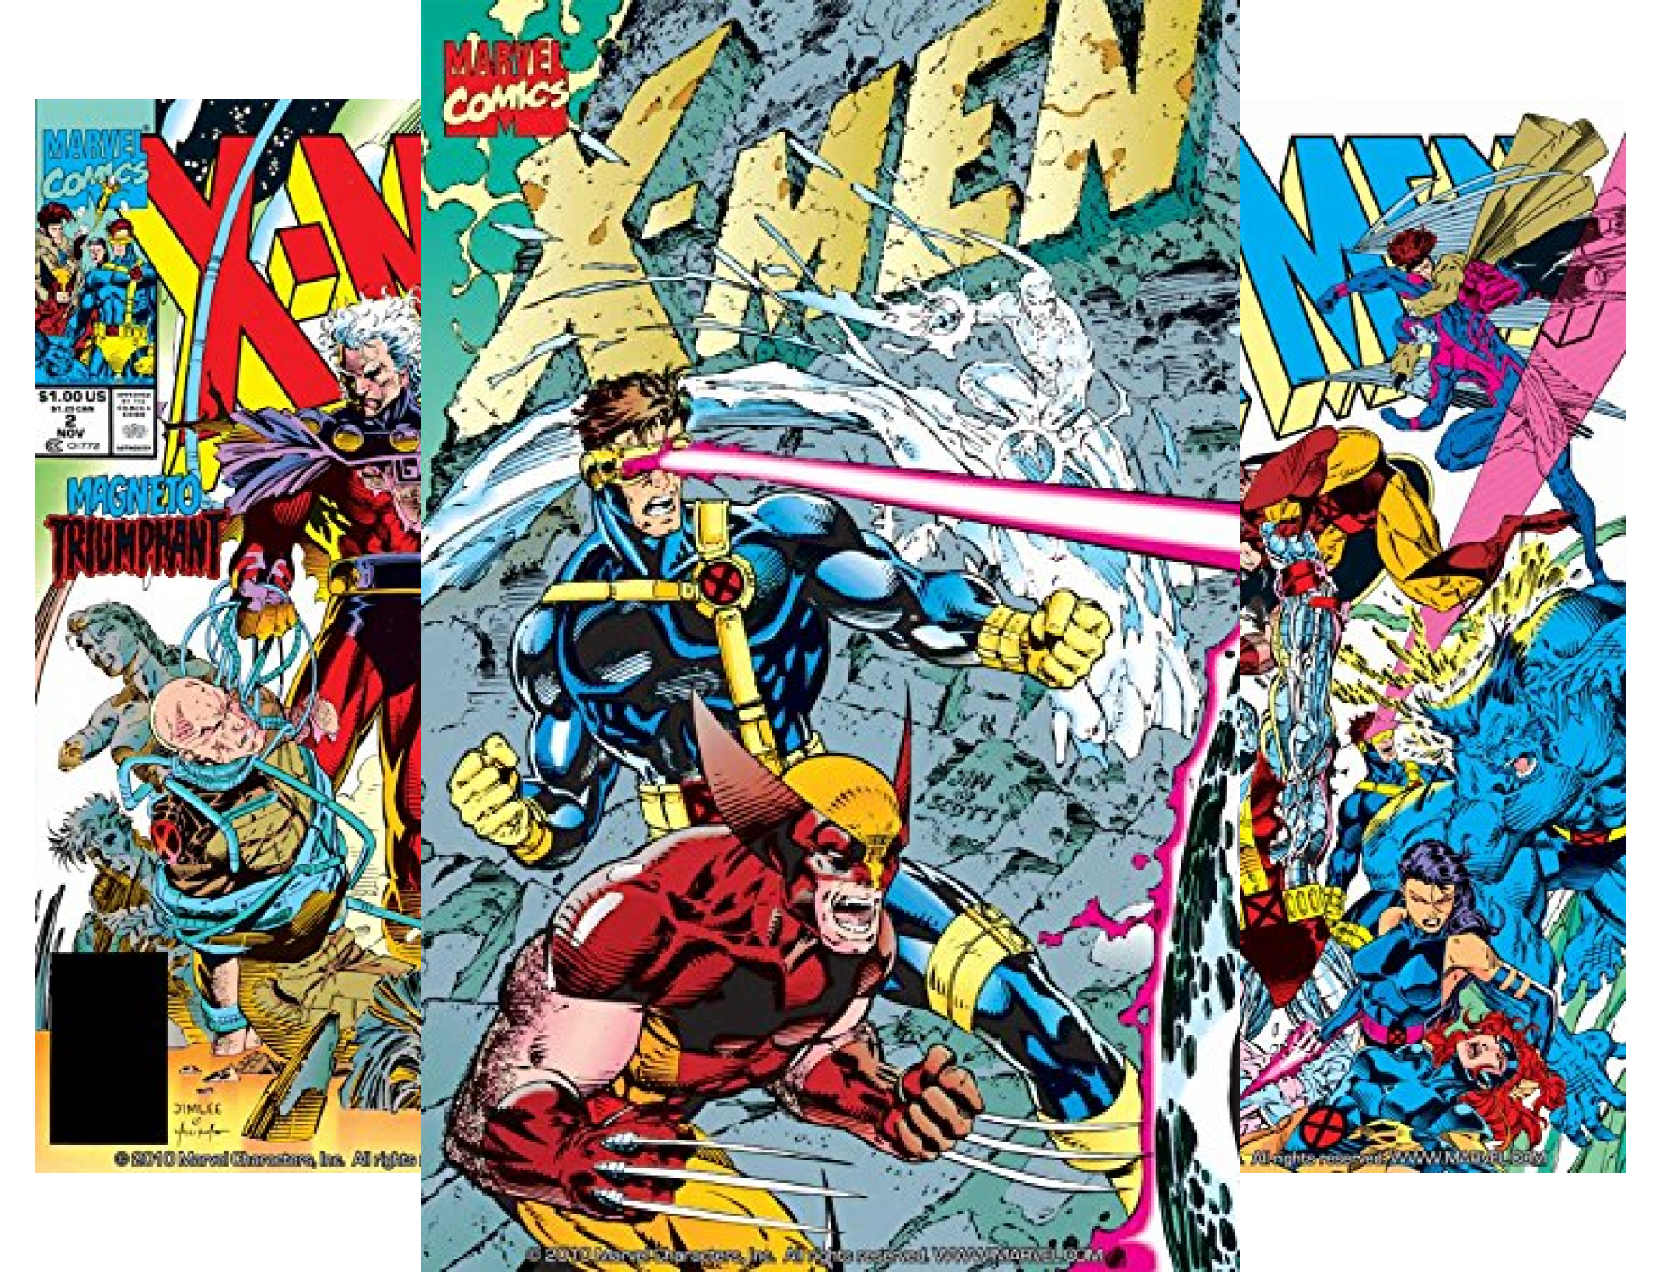 X-Men: Mutant Genesis Premiere HC #1-7 (7 Book Series)